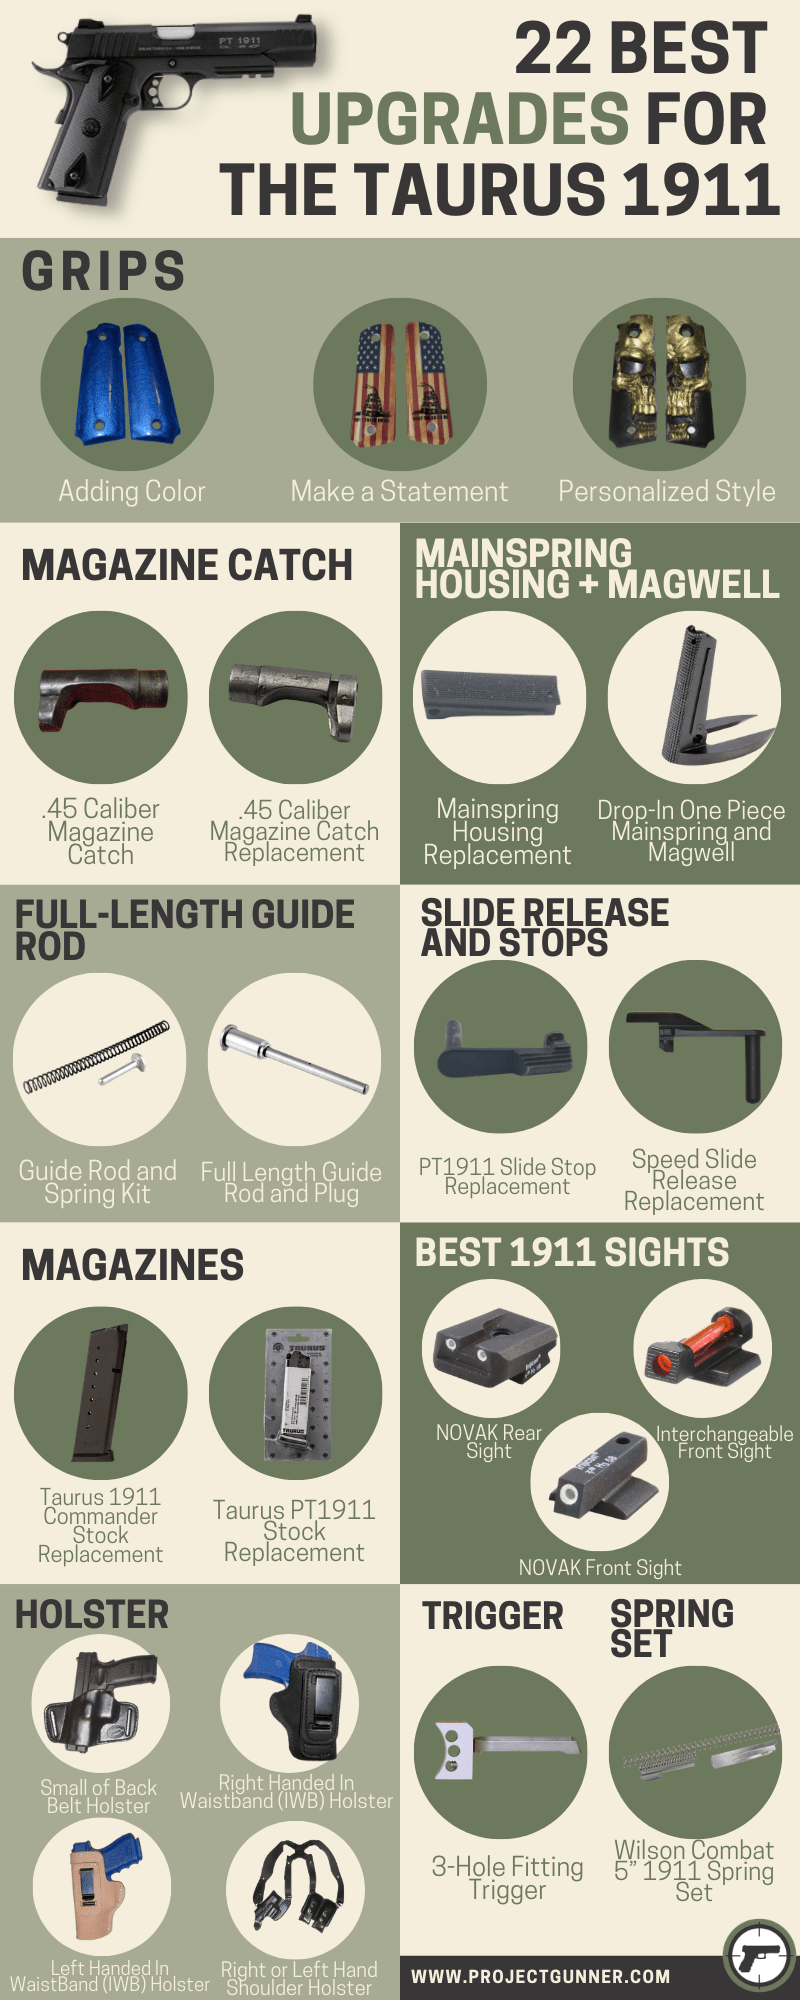 22 Best Upgrades for the Taurus 1911 - infographics